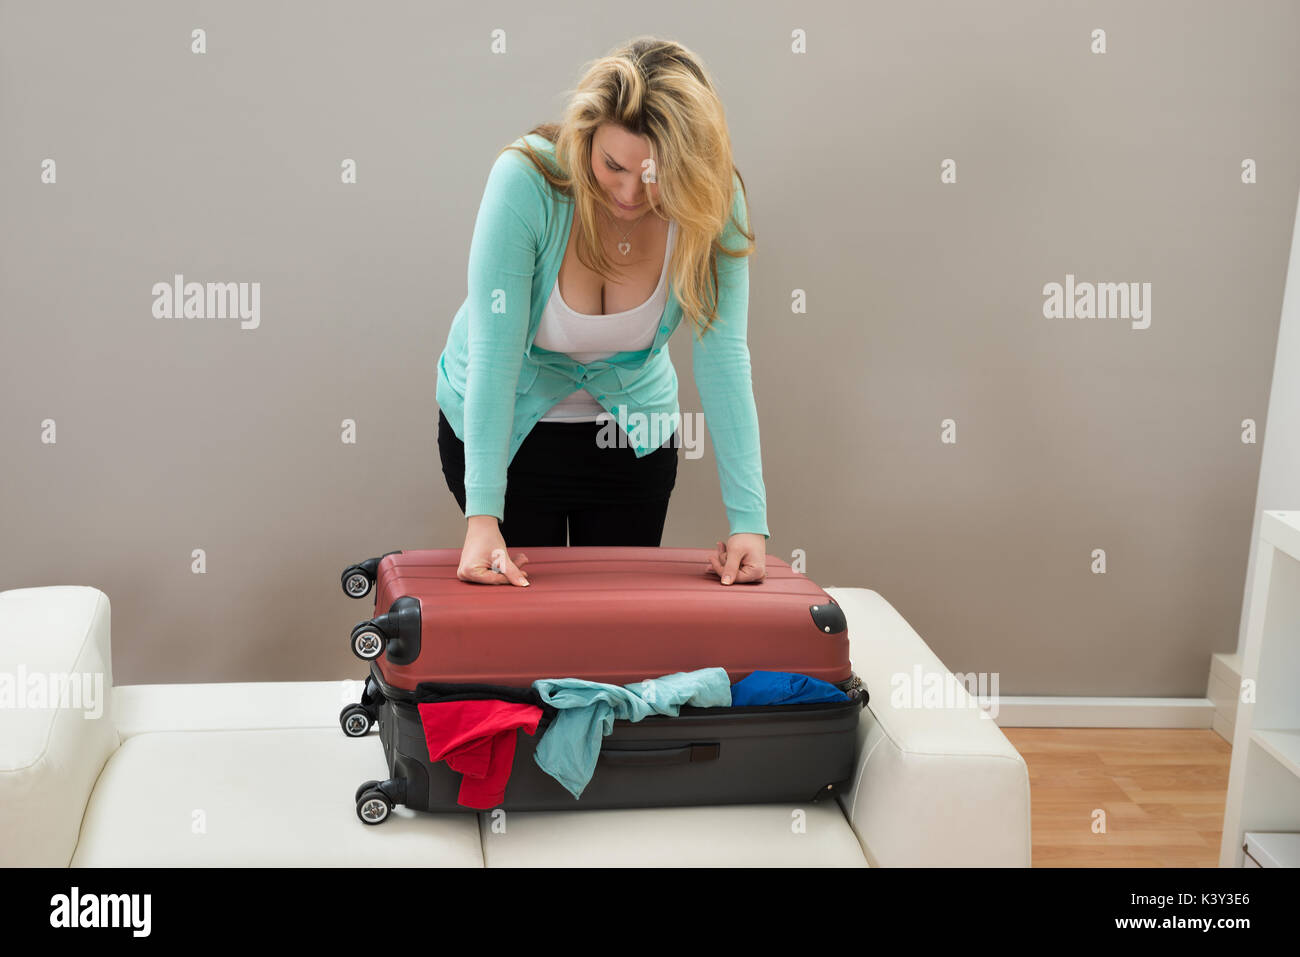 Woman Trying To Close The Overfilled Suitcase In The Room Stock Photo